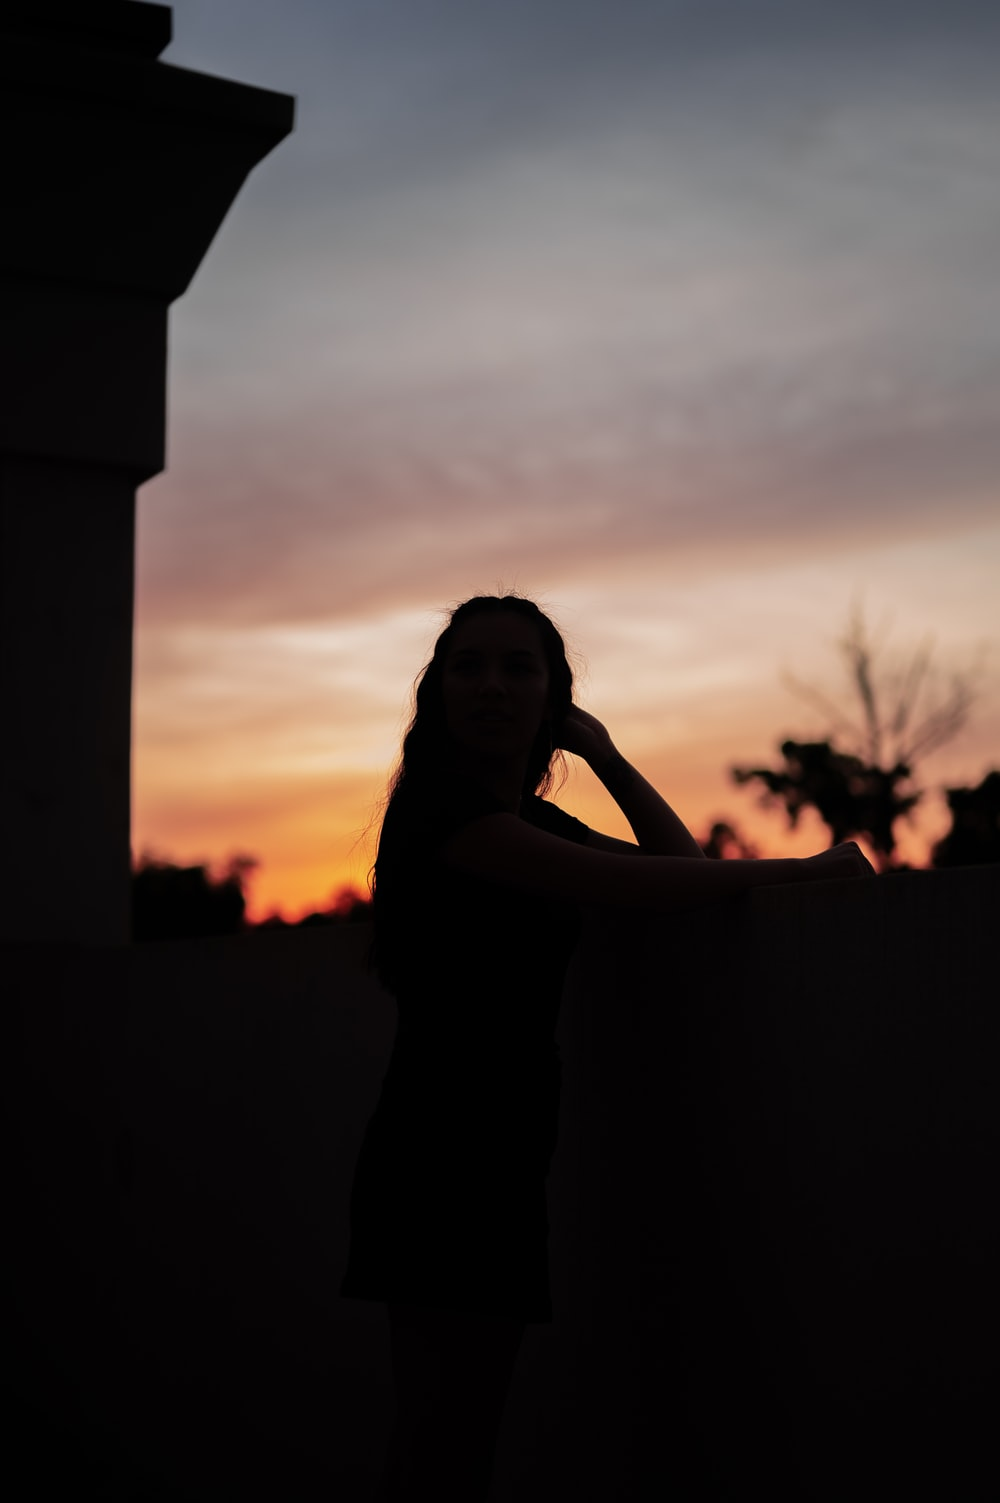 woman in black dress standing during sunset